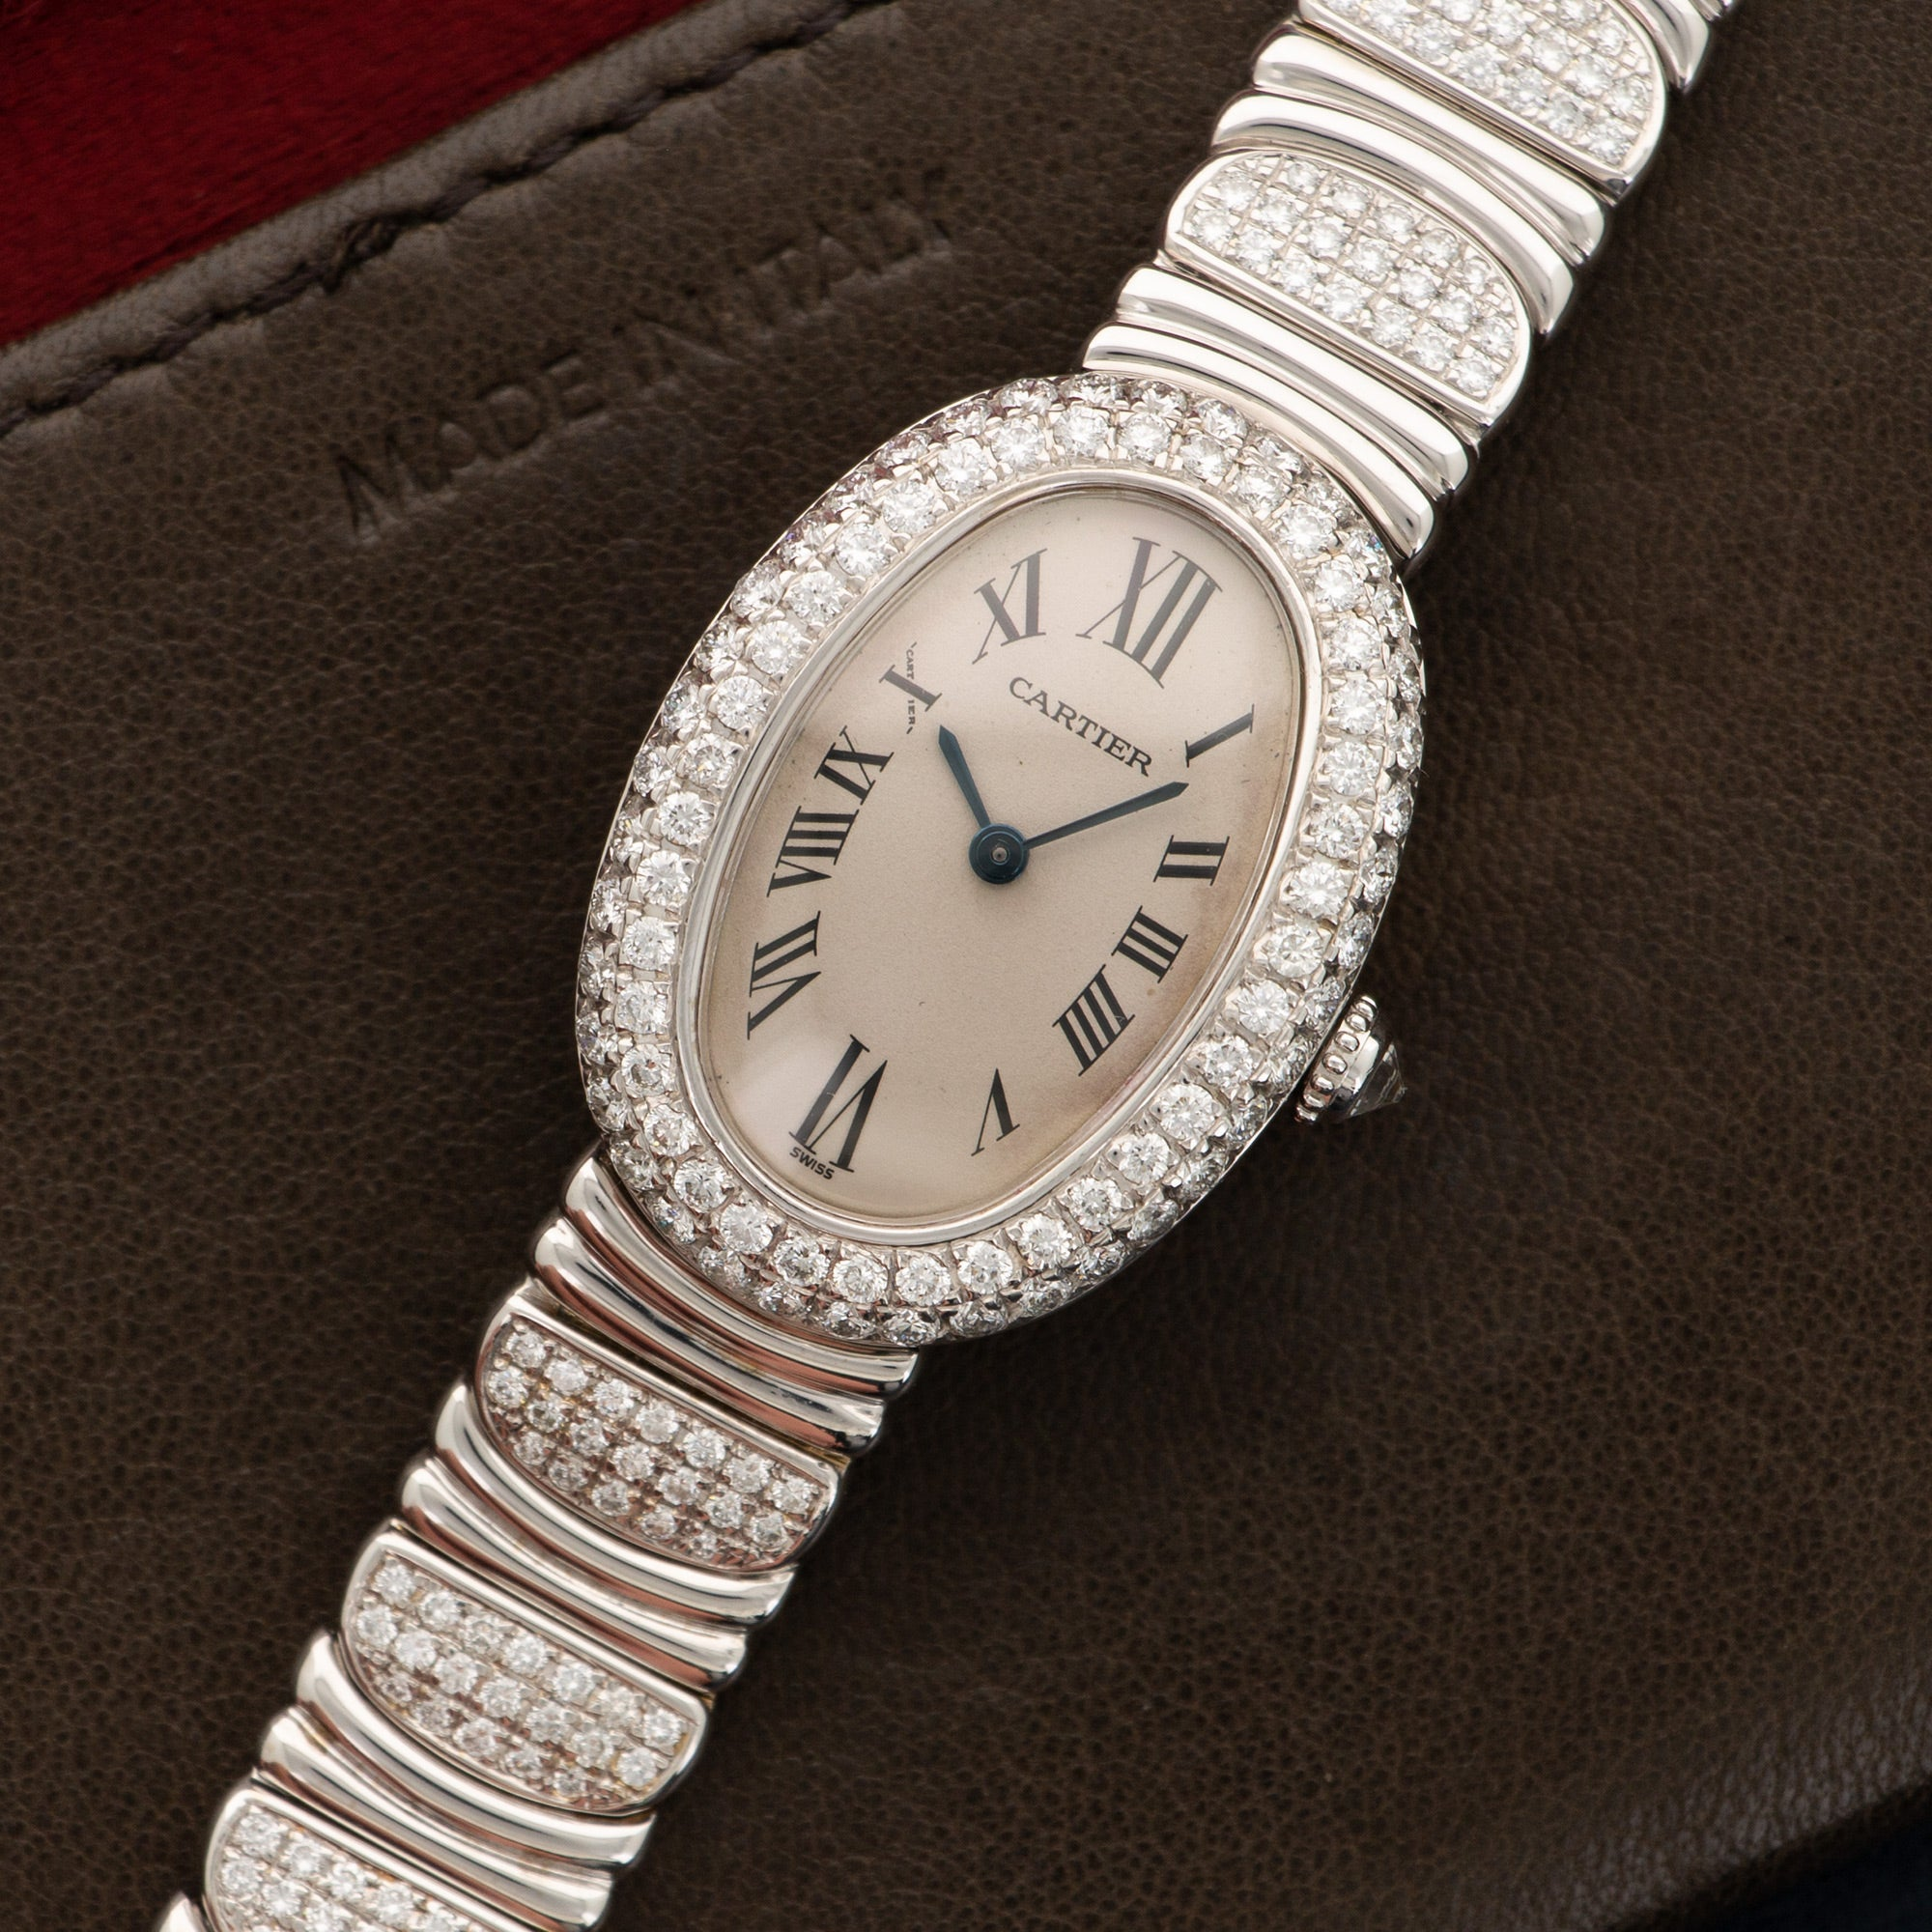 Cartier Baignoire 1955 18k WG  Excellent Ladies 18k WG White with Roman Numerals 23 X 31mm Quartz 2000s White Gold with Custom Diamonds Leather Travel Case